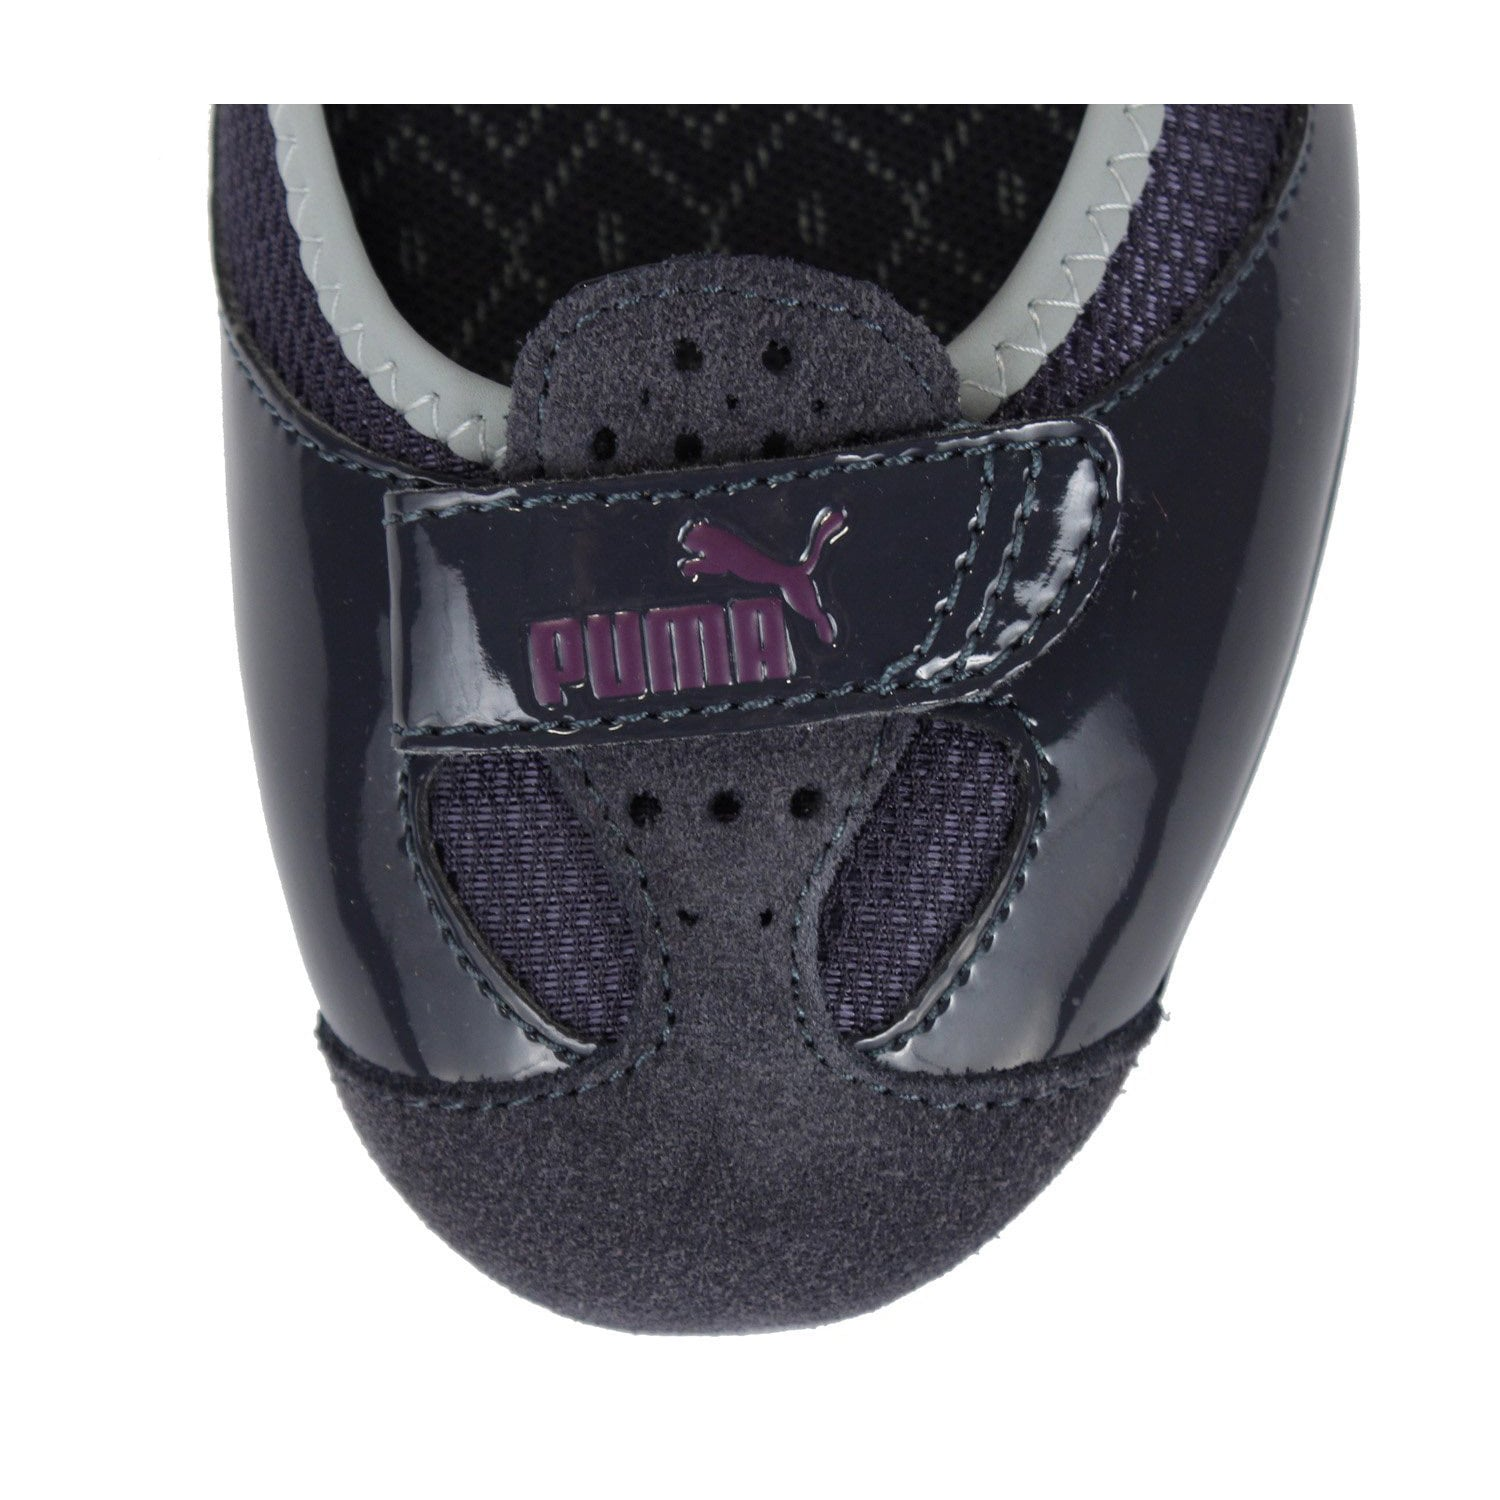 68a3f243d6f Shop Puma Women s  Zandy Native  Leather and Mesh Socklined Sporty Flats -  Free Shipping Today - Overstock - 7831710